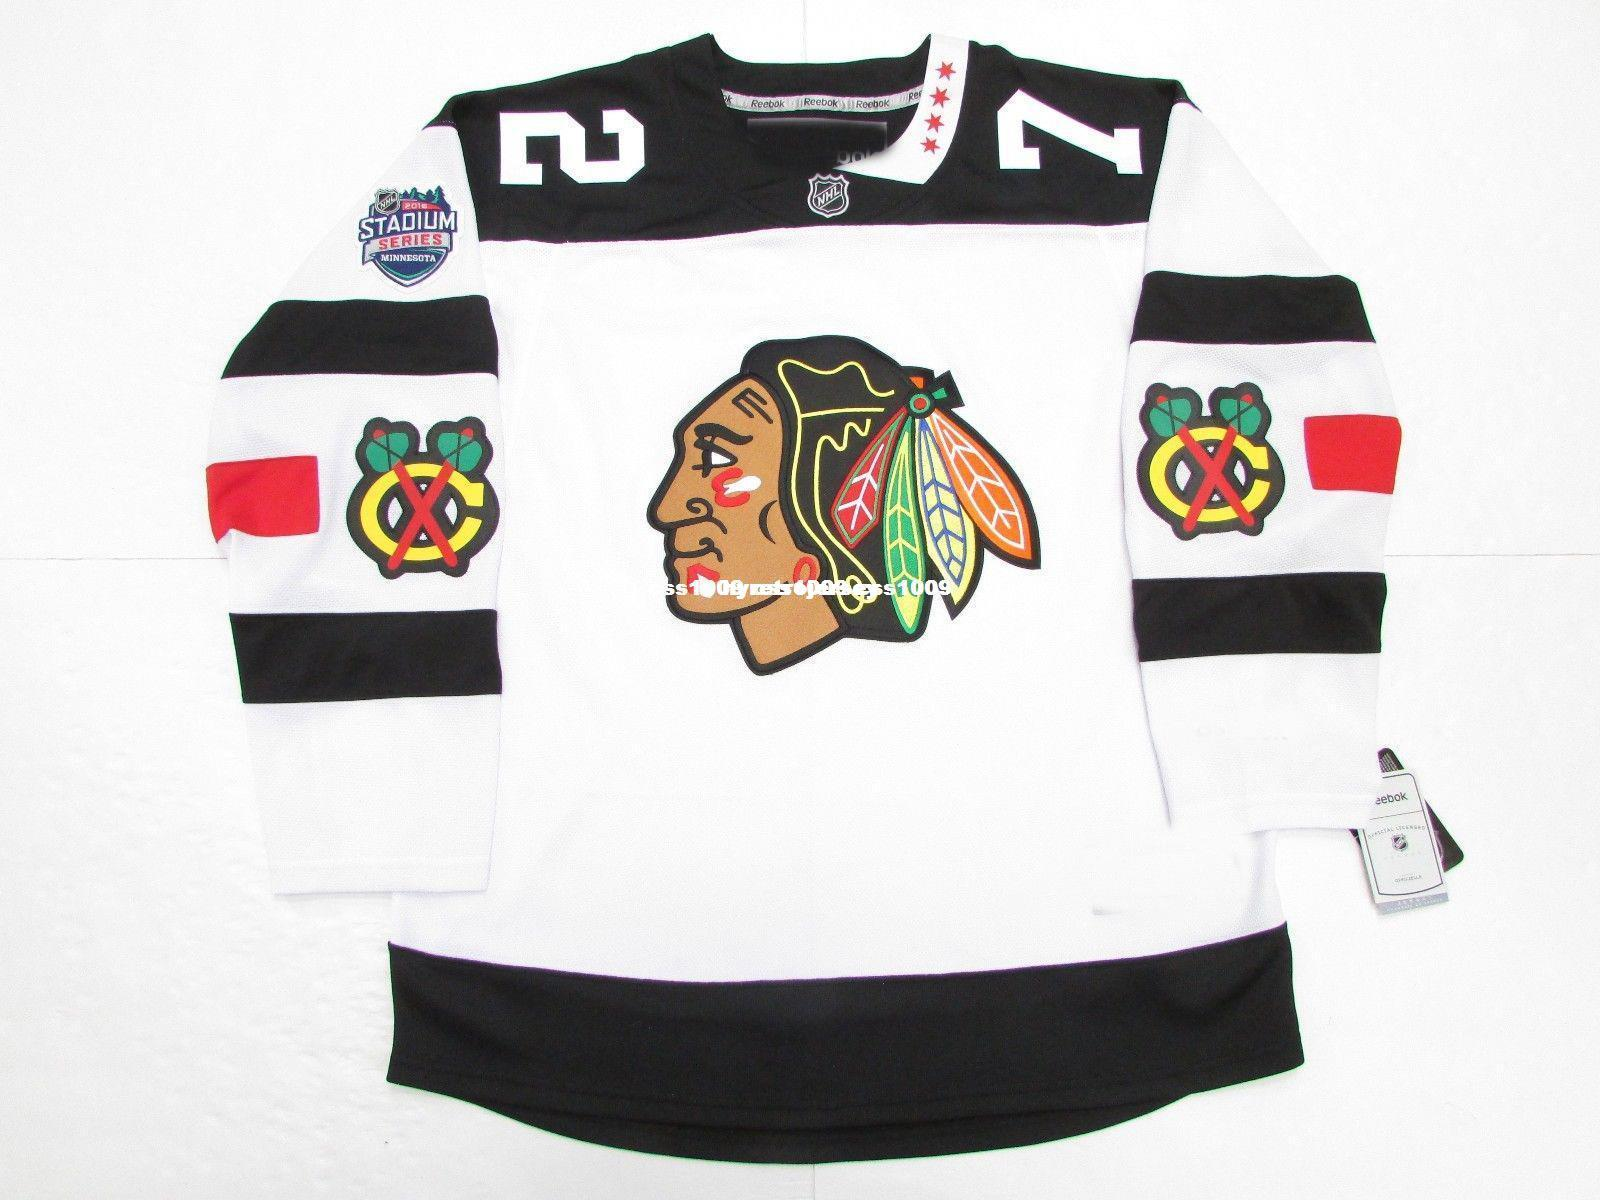 finest selection 5befe 8f0e3 Cheap custom ARTEMI PANARIN CHICAGO BLACKHAWKS 2016 STADIUM SERIES PREMIER  JERSEY stitch add any number any name Mens Hockey Jersey GOALIE C